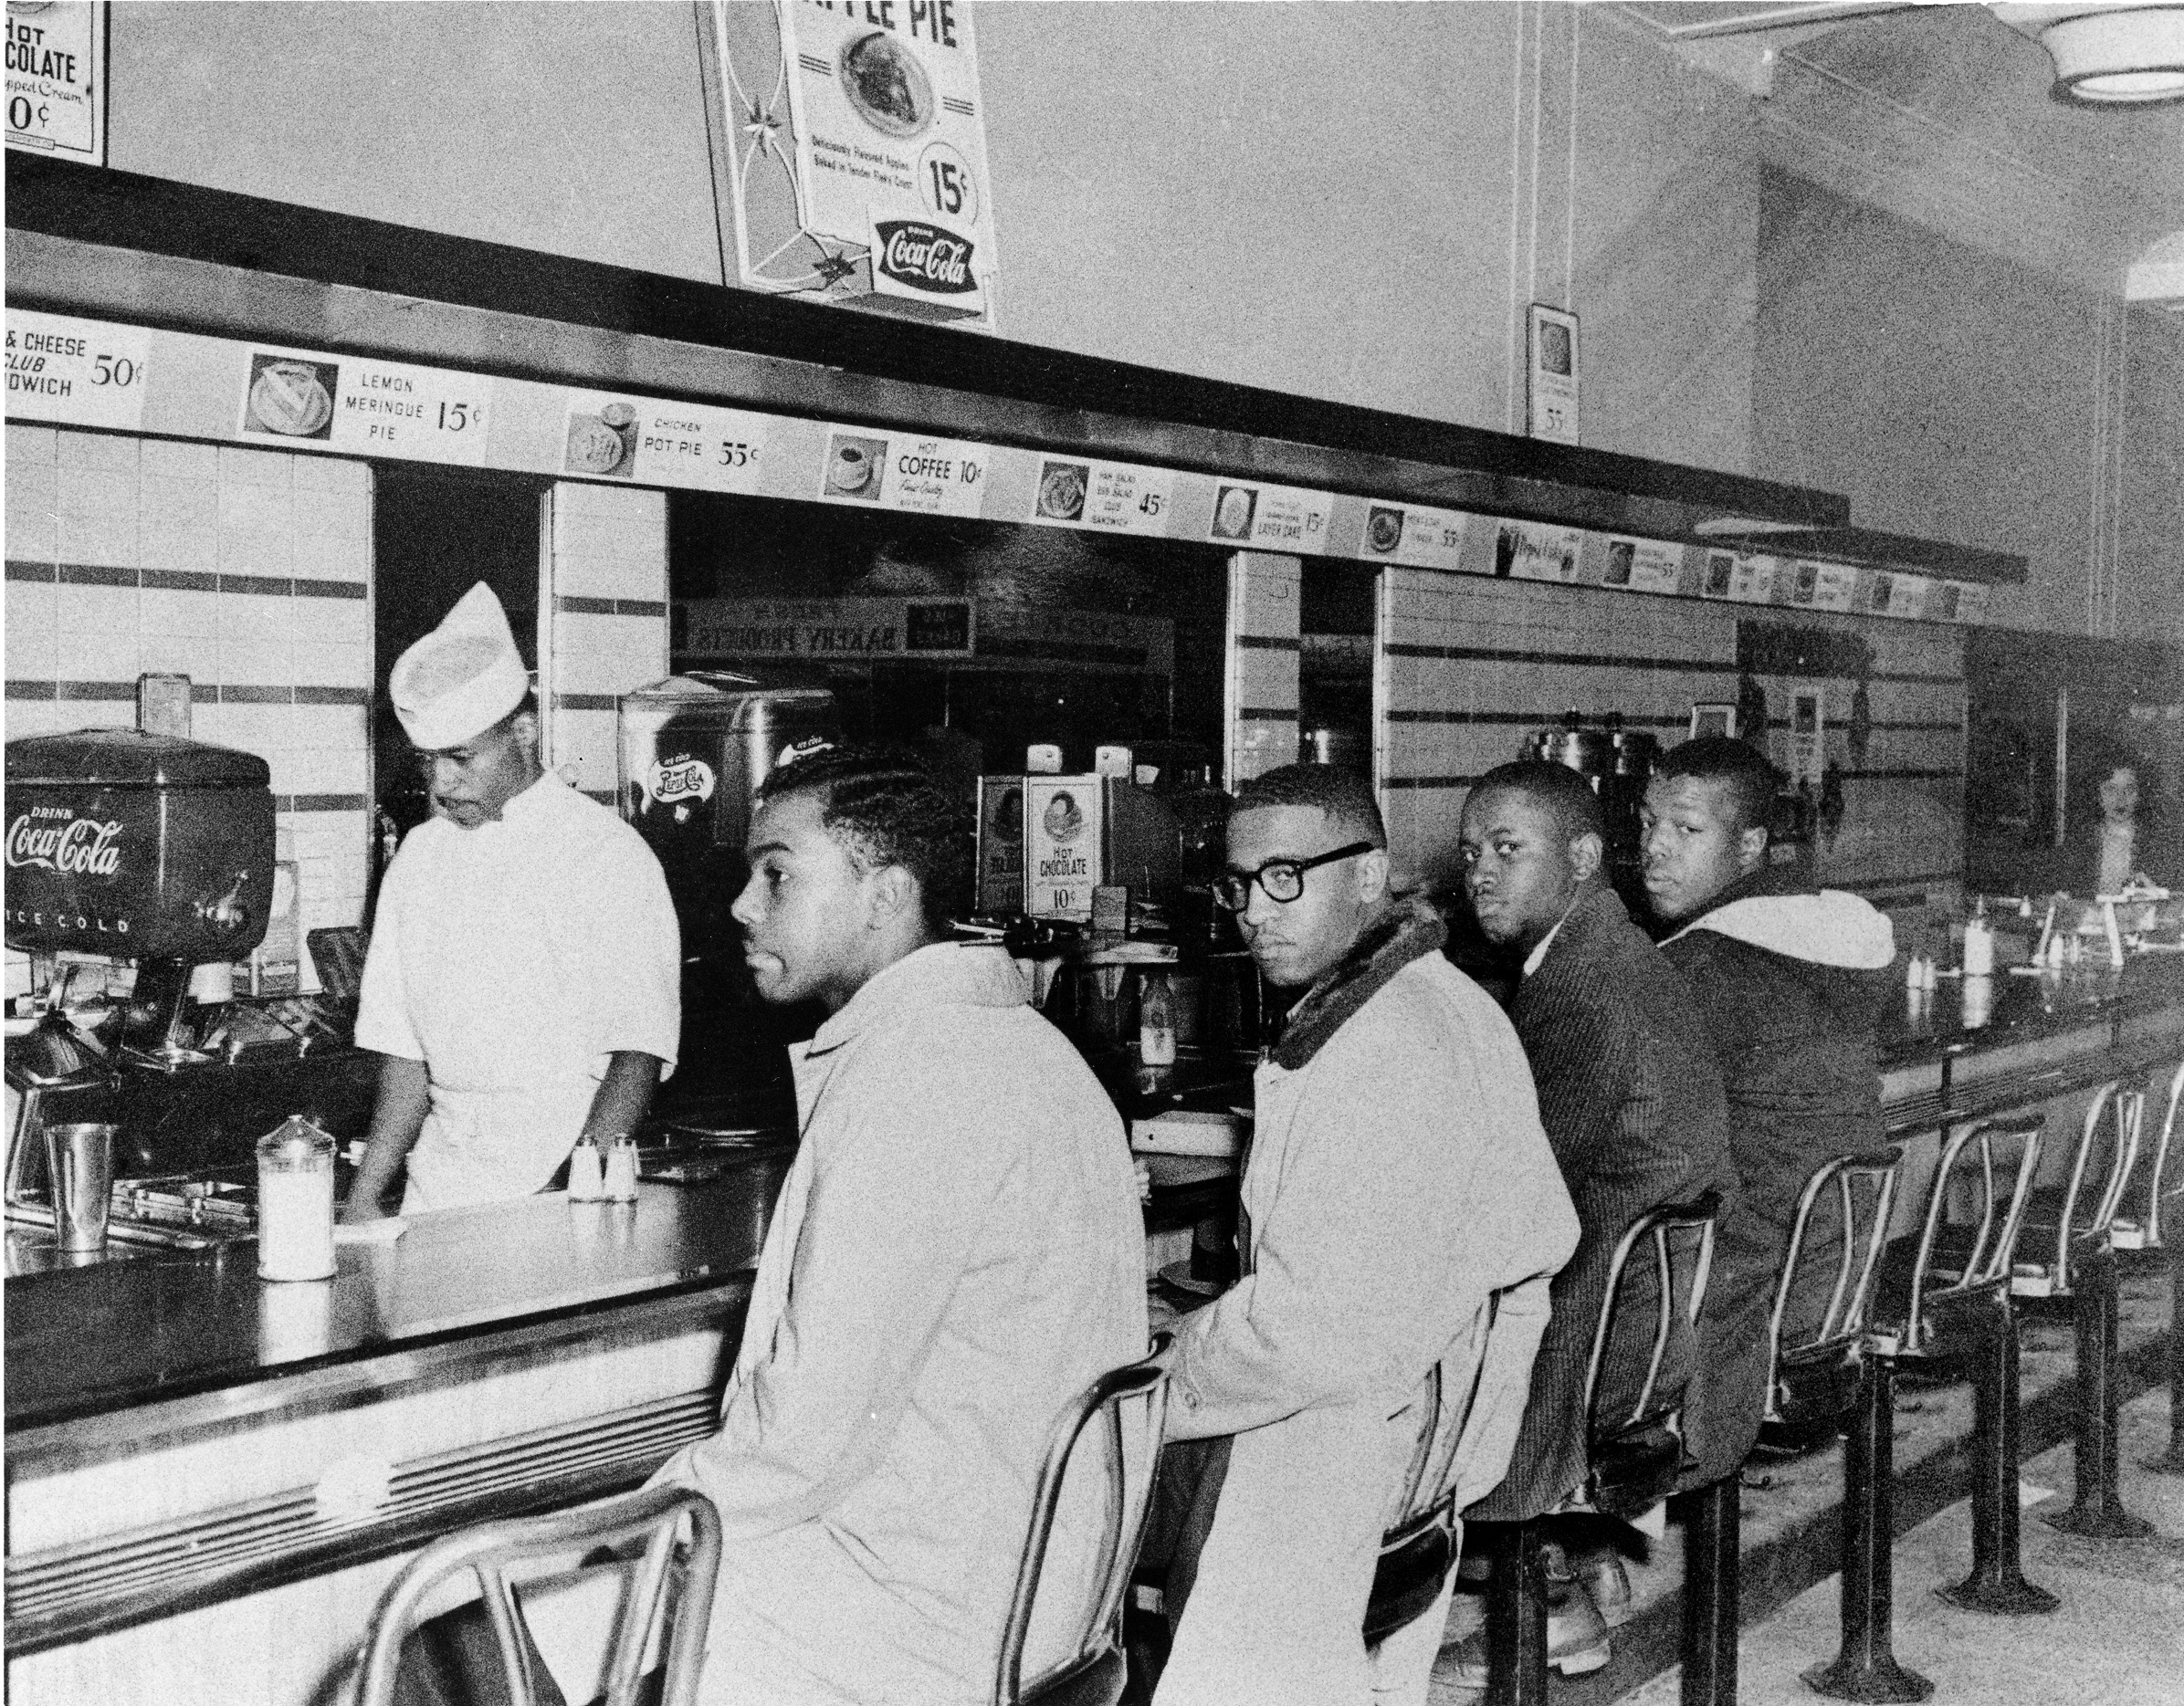 This is a historical photograph of four male African American students sitting at the counter of Woolworth in Greensboro, North Carolina, 1960.